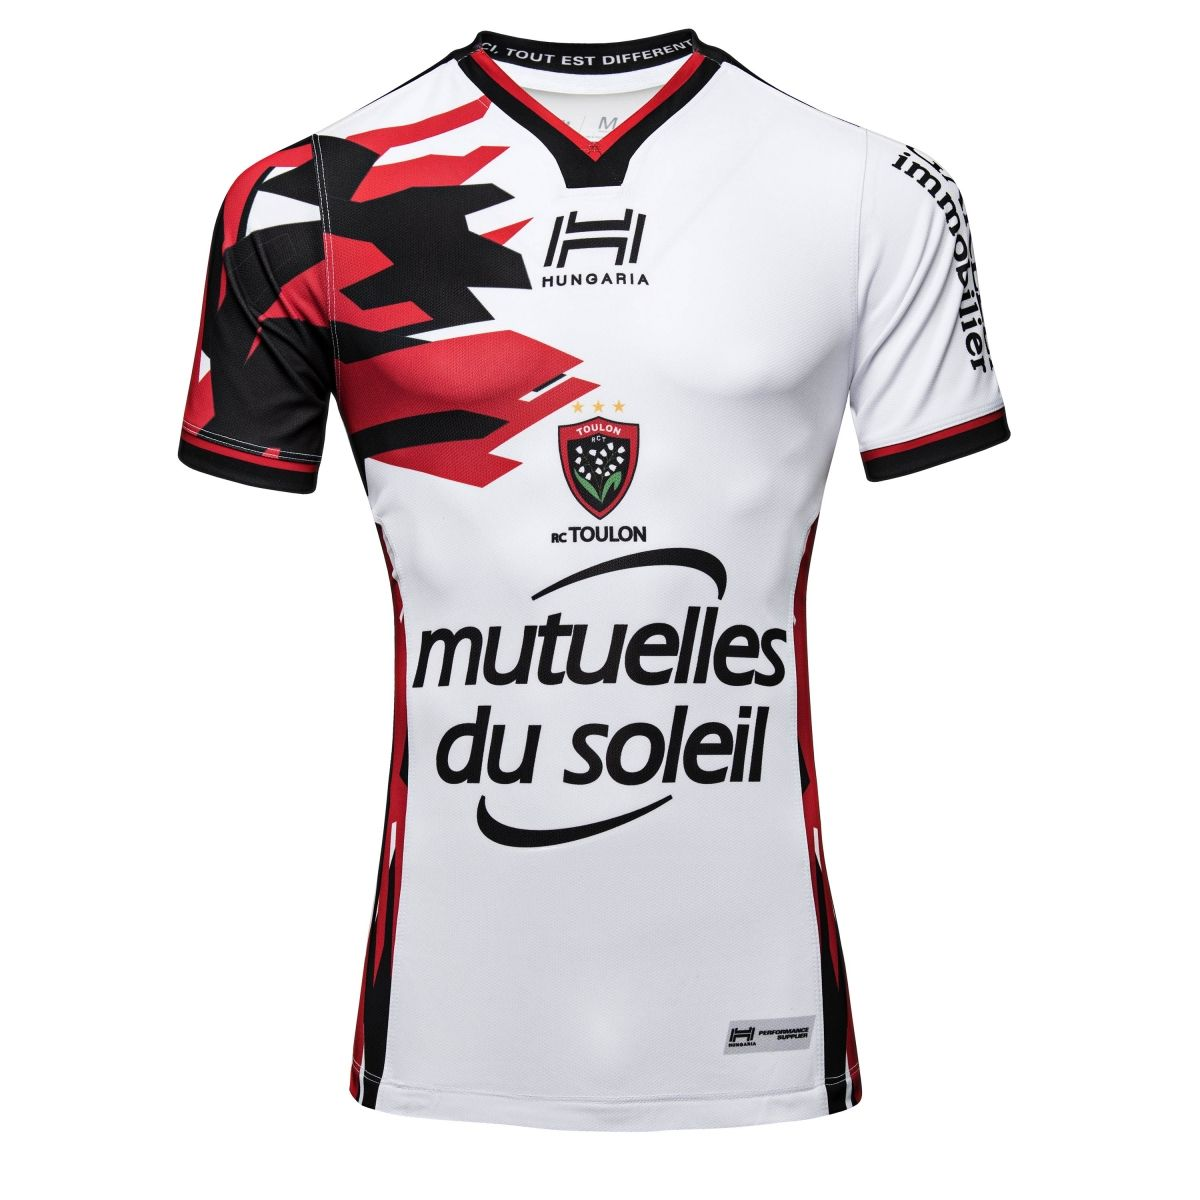 Maillot Polyester Enfant Maillot Replica